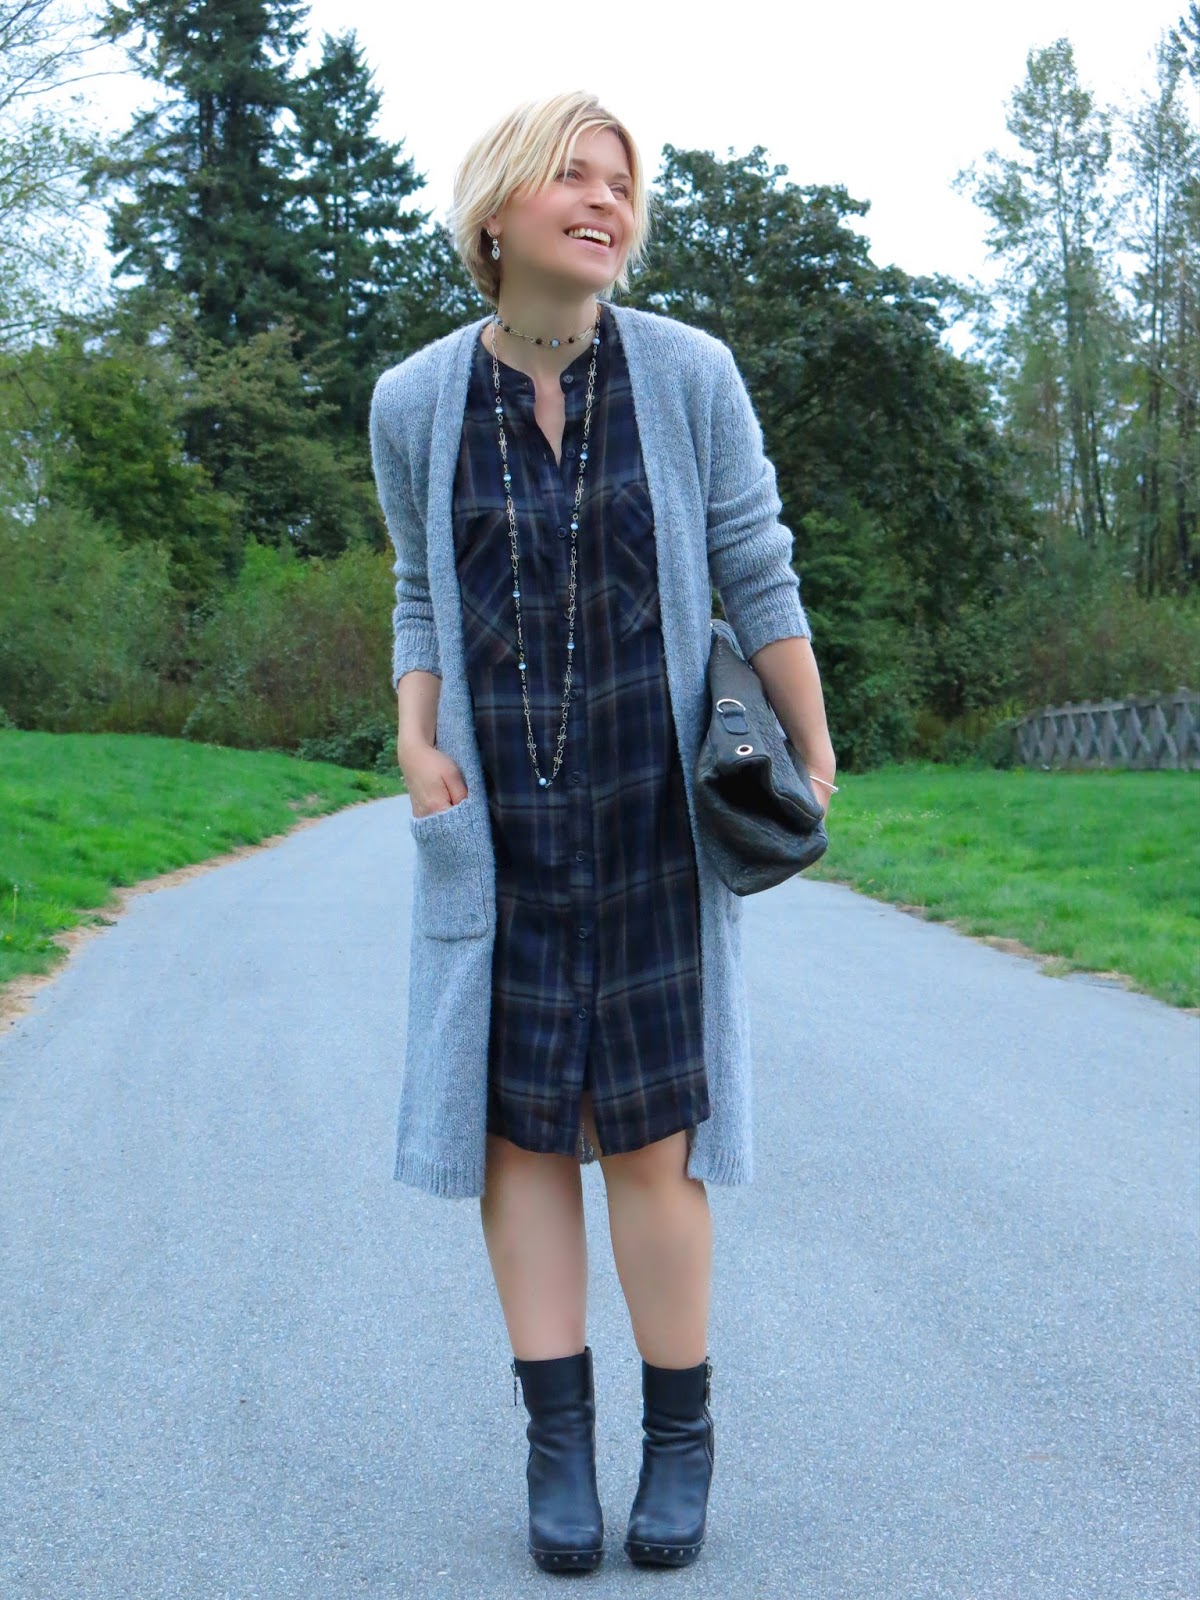 styling a plaid shirtdress with a long cardigan and chunky booties